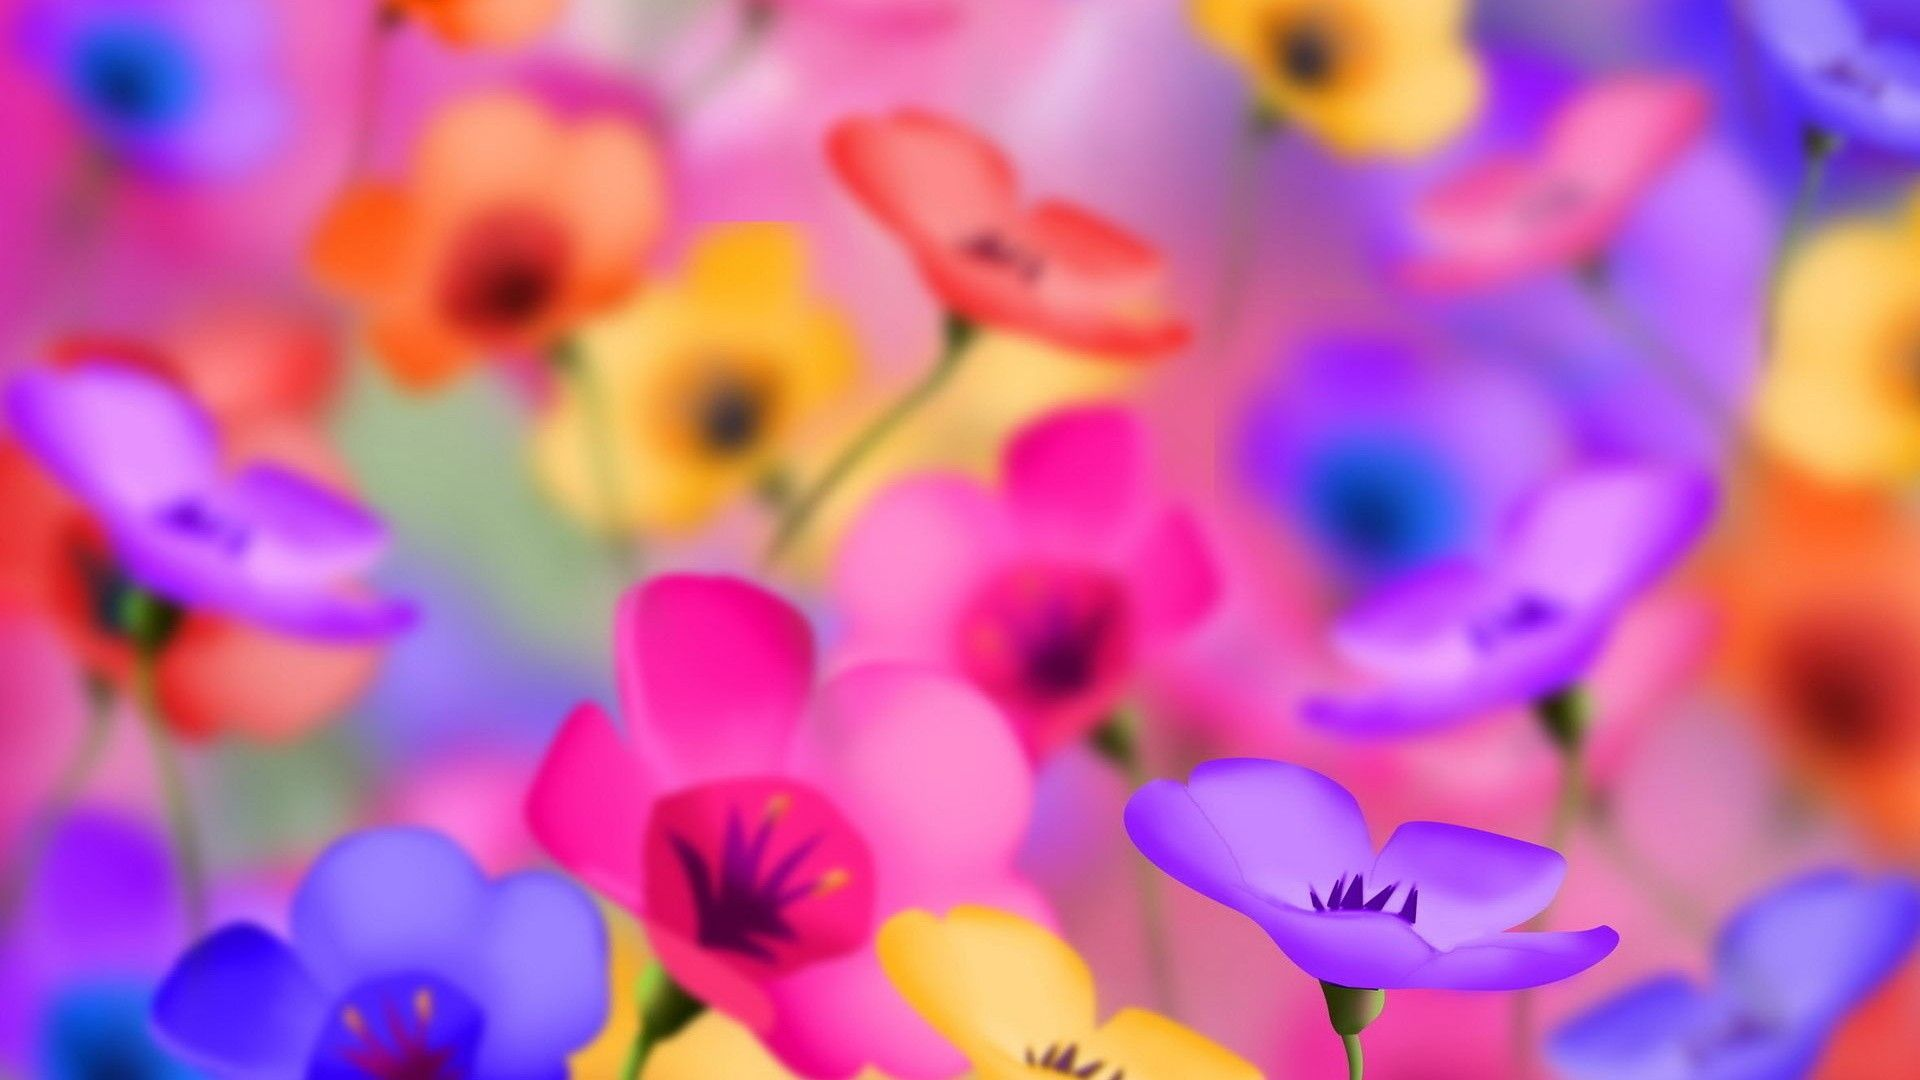 Collection of Free Wallpapers For Phones Free Download on